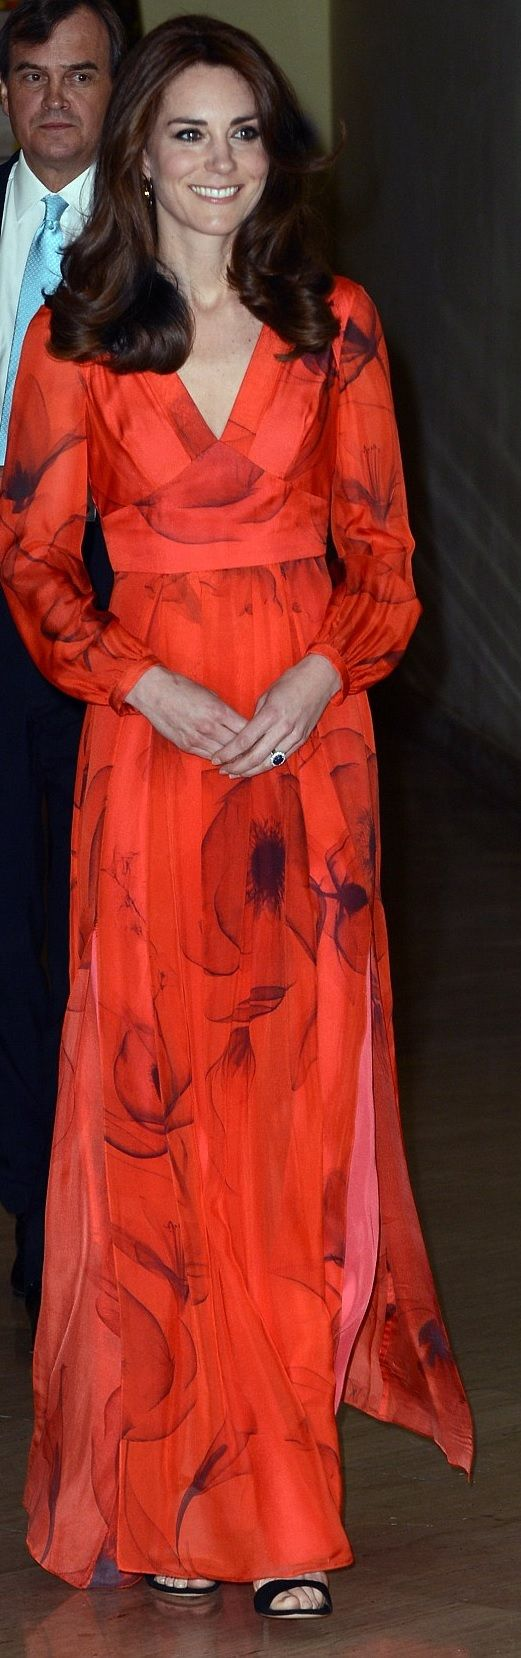 Kate Middleton in Beulah London http://www.dailymail.co.uk/news/article-3542121/Poppy-appeal-Kate-dons-745-red-dress-featuring-Bhutan-s-national-flower-special-tribute-country-glittering-reception.html http://whatkatewore.com/2016/04/15/its-familiar-favorites-for-himalayan-hike-poppies-on-her-evening-gown/ http://hrhduchesskate.blogspot.sg/2016/04/the-duchess-in-poppy-print-beulah.html